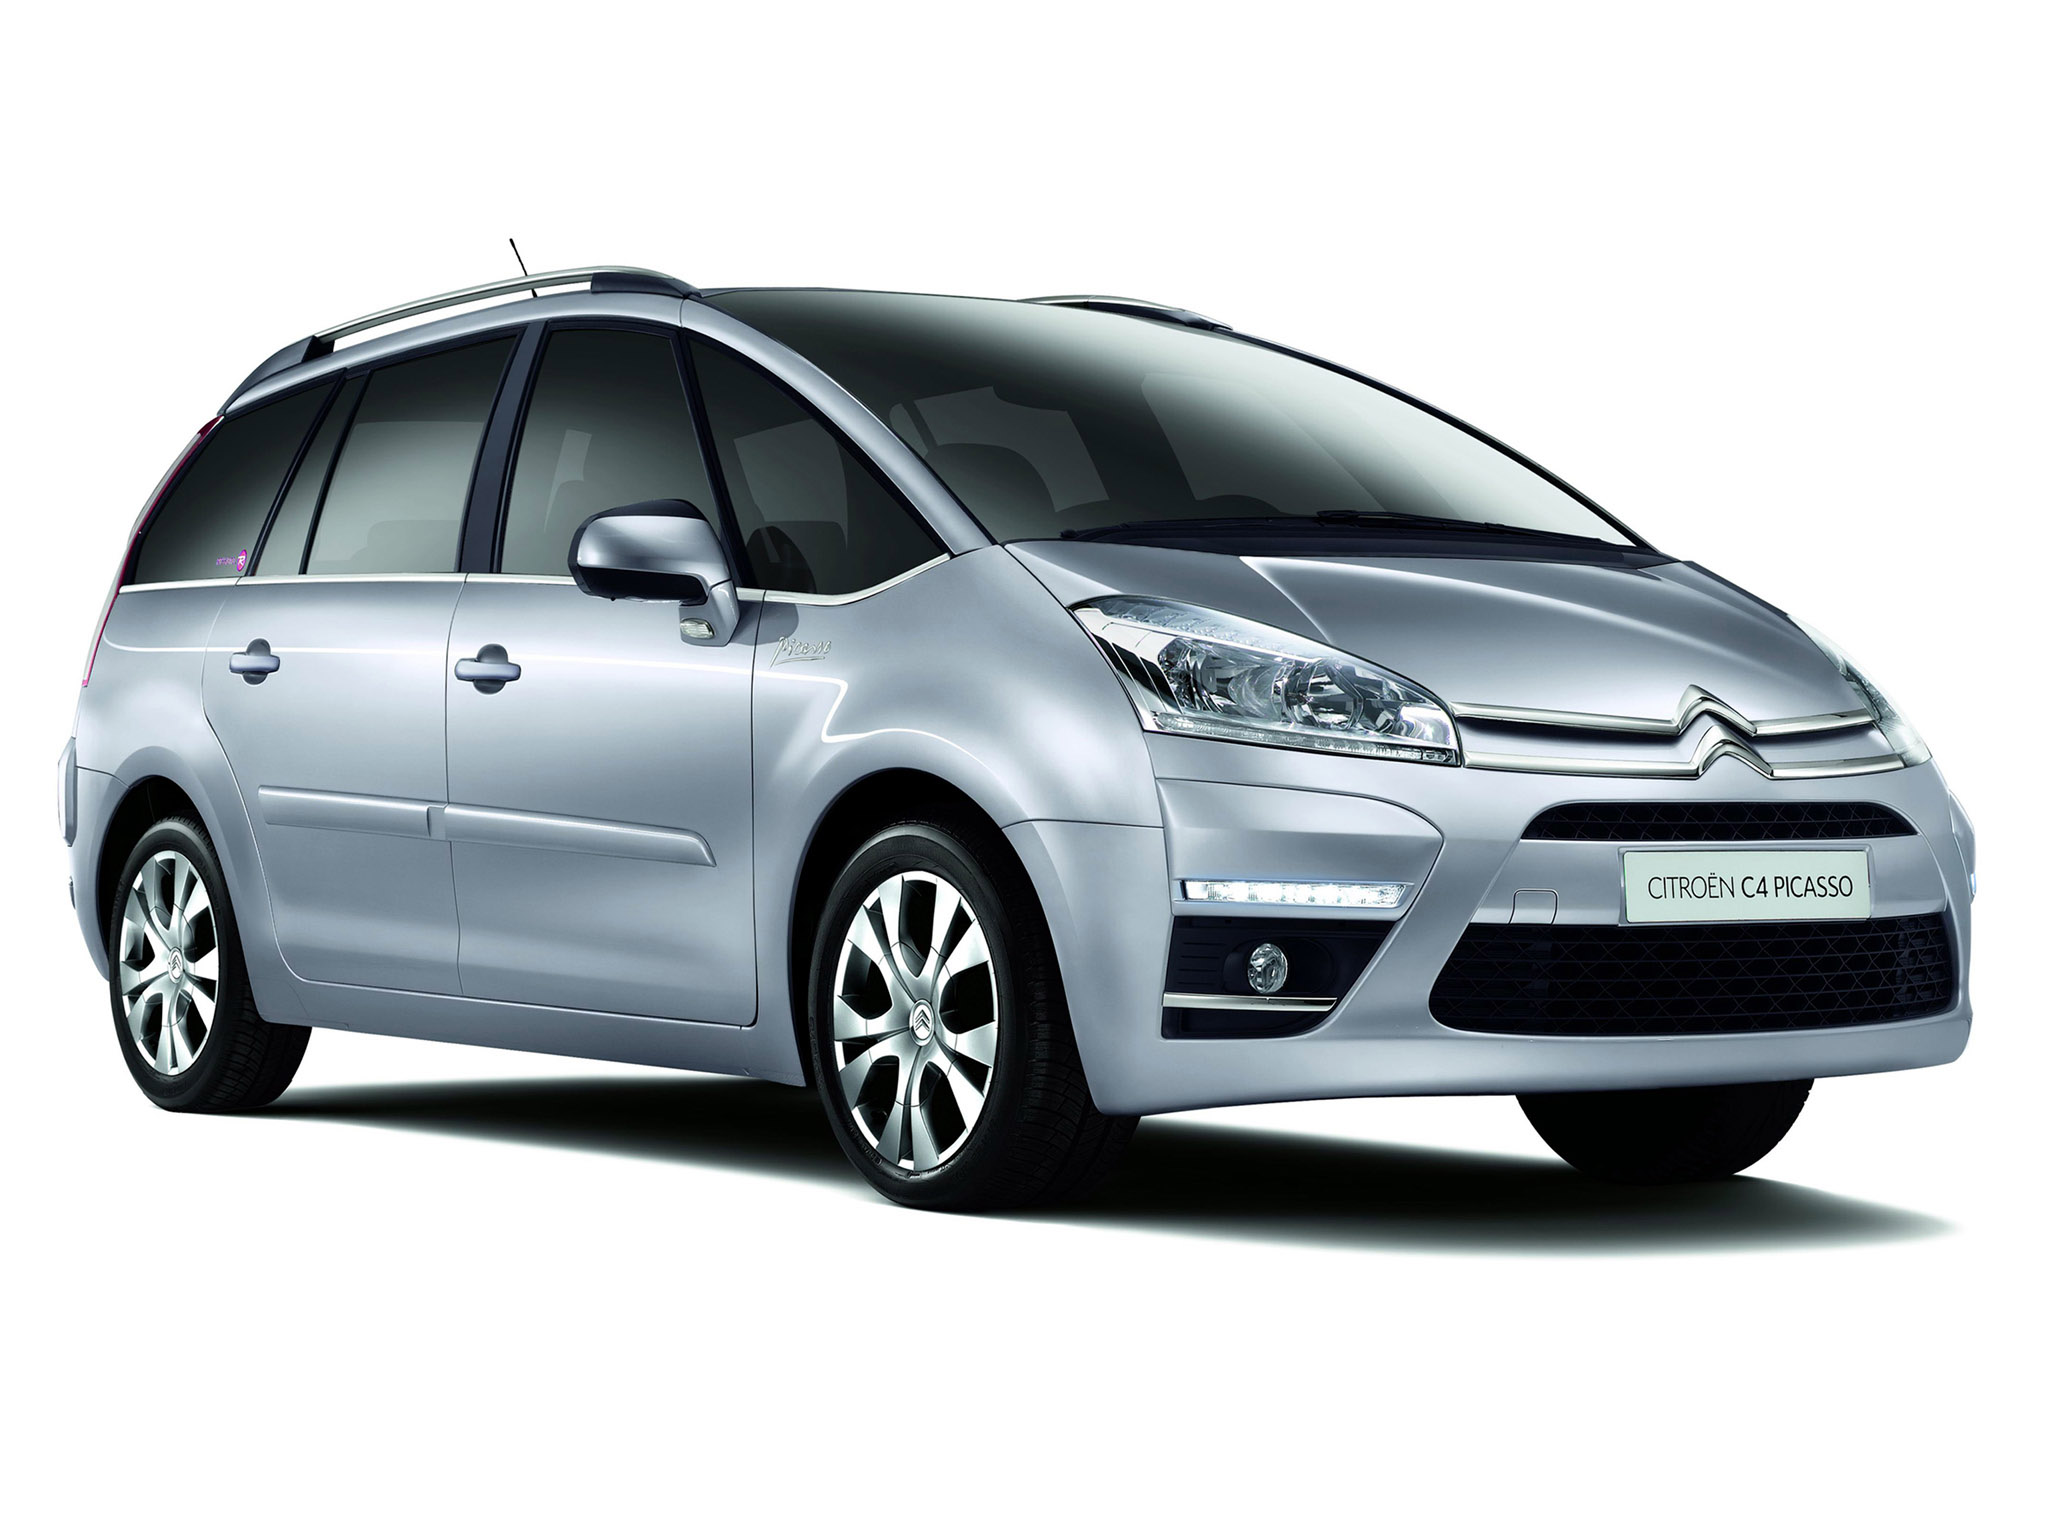 citroen c4 grand picasso 2010 citroen c4 grand picasso 2010 photo 15 car in pictures car. Black Bedroom Furniture Sets. Home Design Ideas